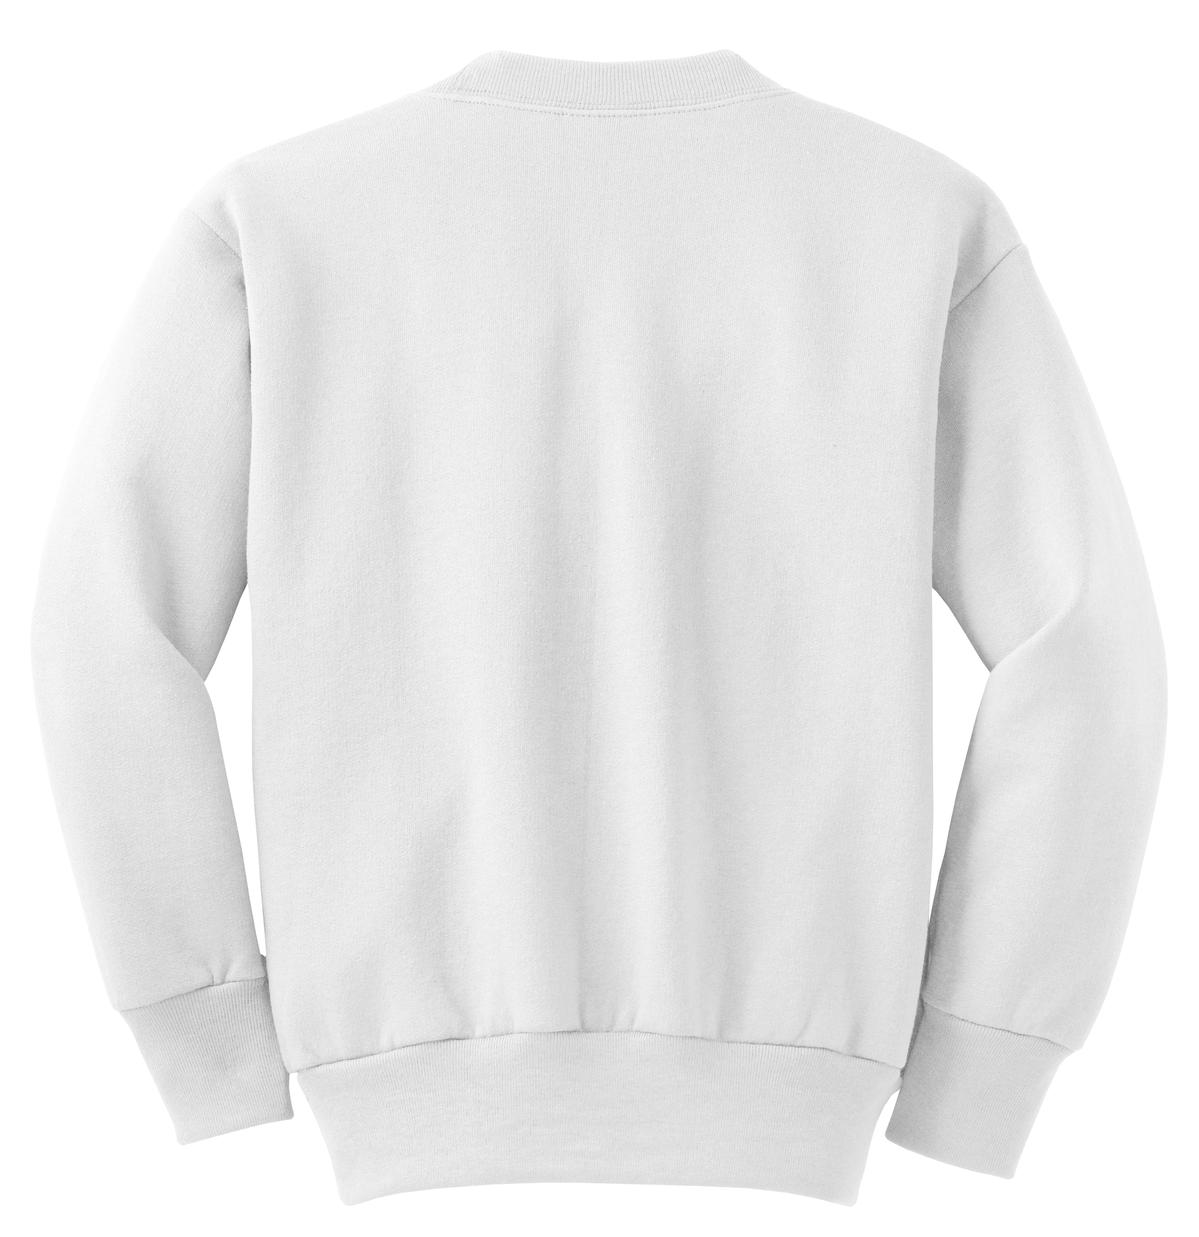 PORT AND COMPANY Crewneck Sweatshirt PC90Y